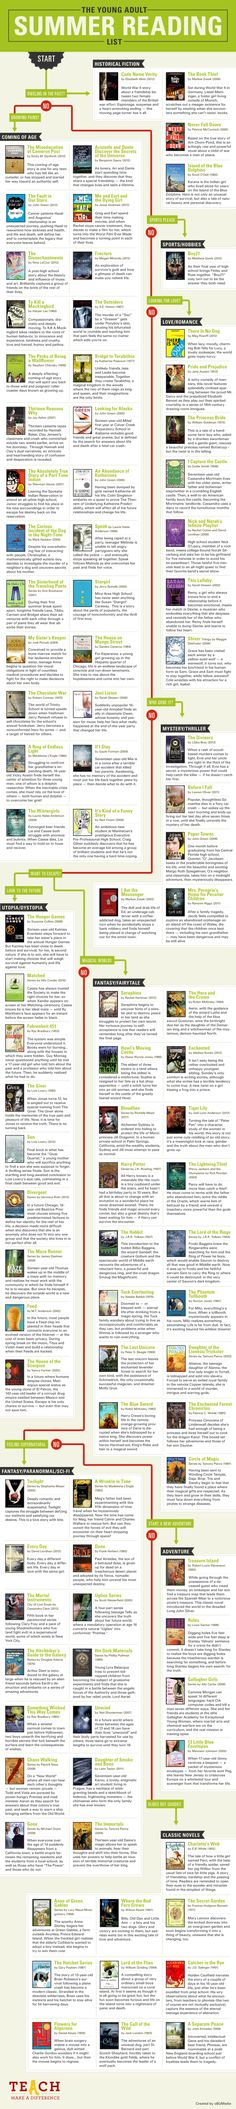 The Summer Reading Flowchart: Young Adult Books! [Infographic] - http://teach.com/education-technology/the-summer-reading-flowchart-young-adult-books